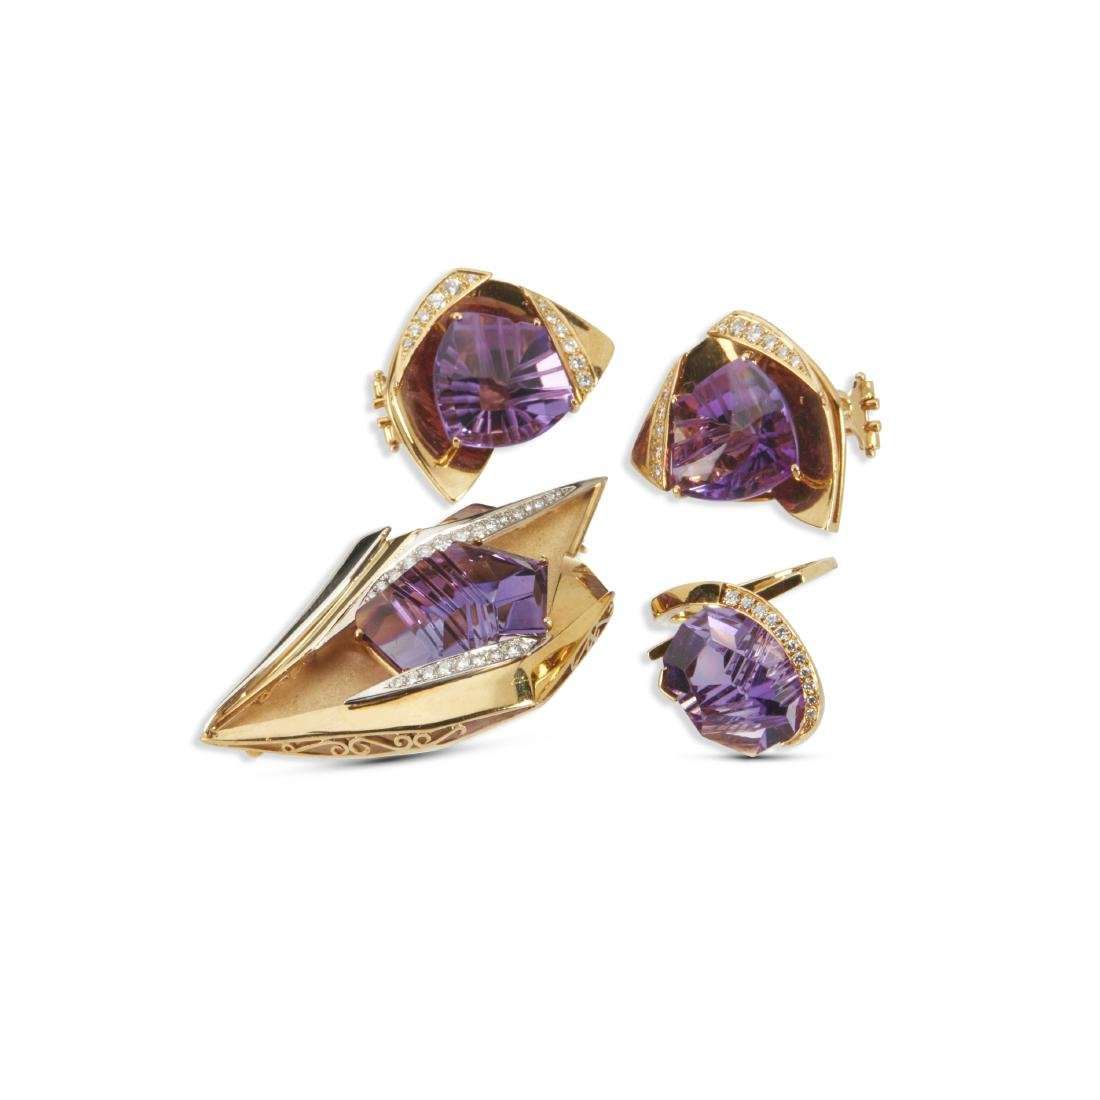 An 18K, Amethyst & Diamond Earrings, Brooch, Ring Set